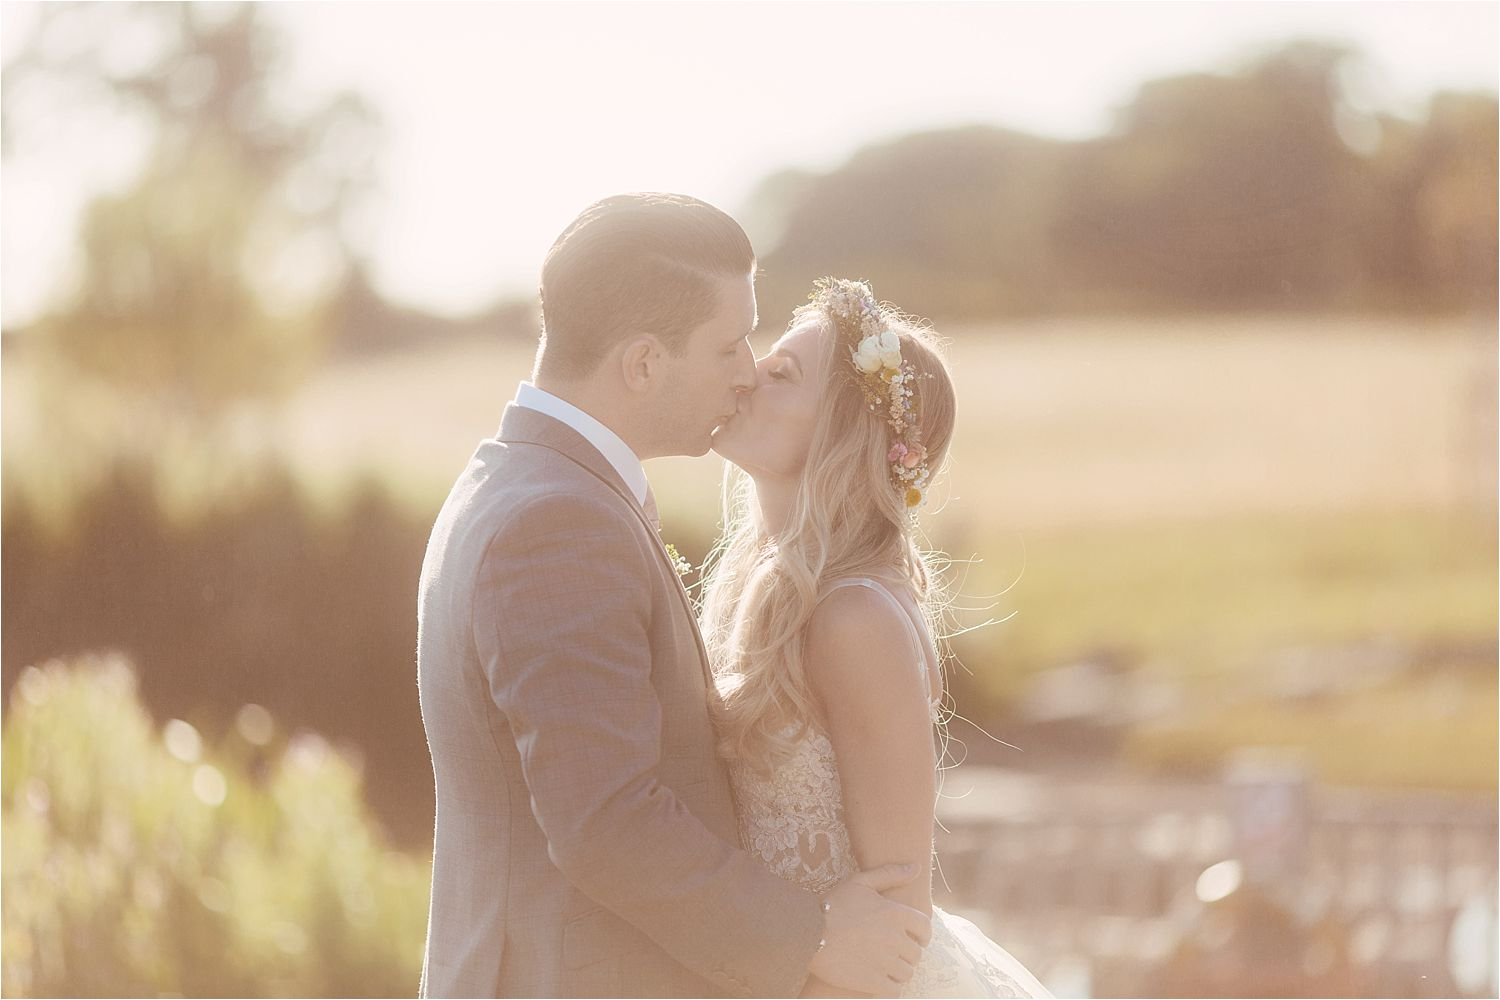 Bride and groom kissing in ground of wedding venue in Congleton Cheshire, Sandhole Oak Barn. Dress by Lazarro